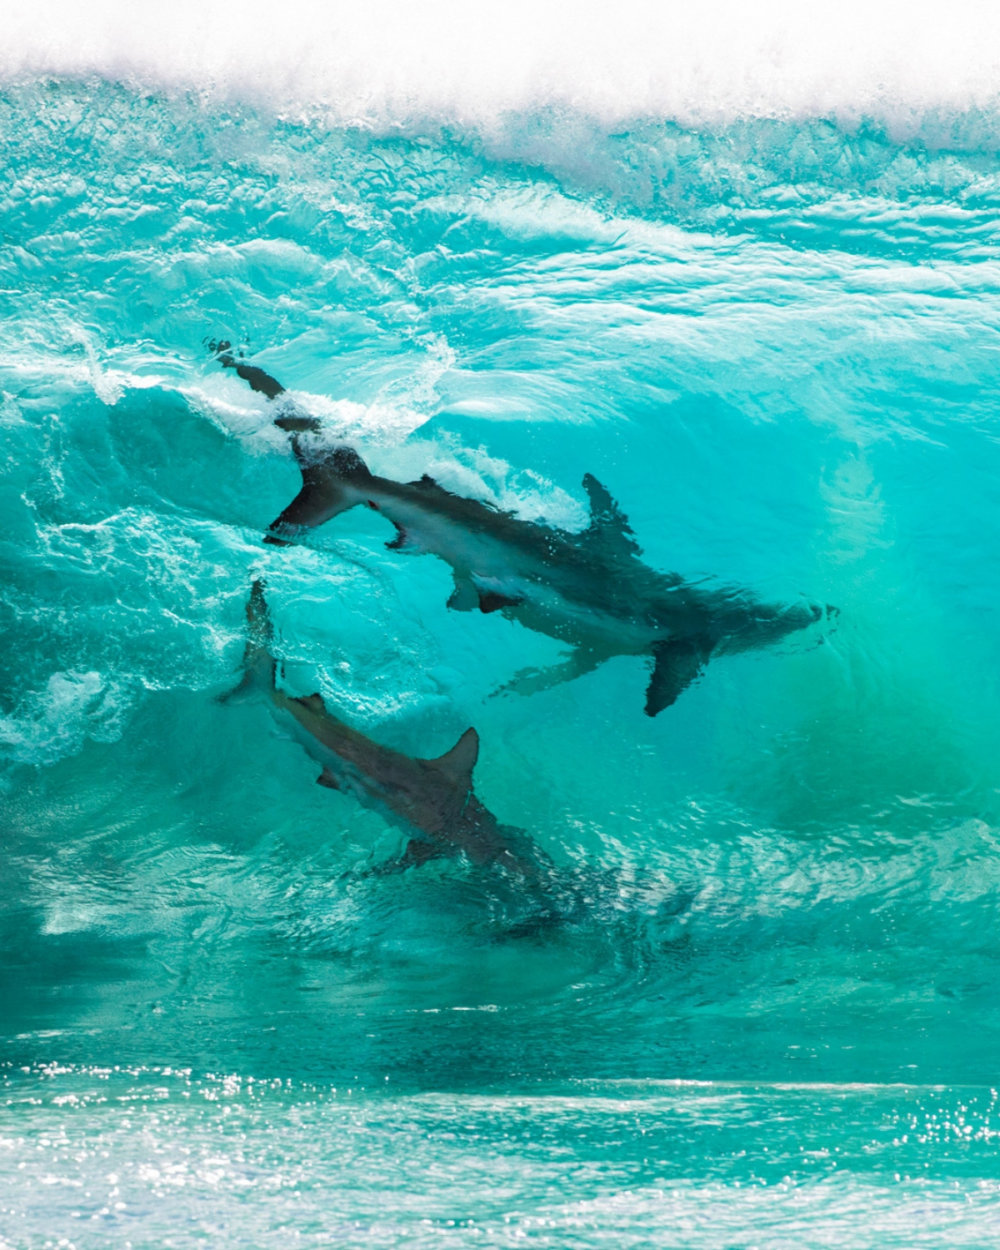 Incredible Photographs Of Sharks Swimming In A Wave Captured By Sean Scott 5